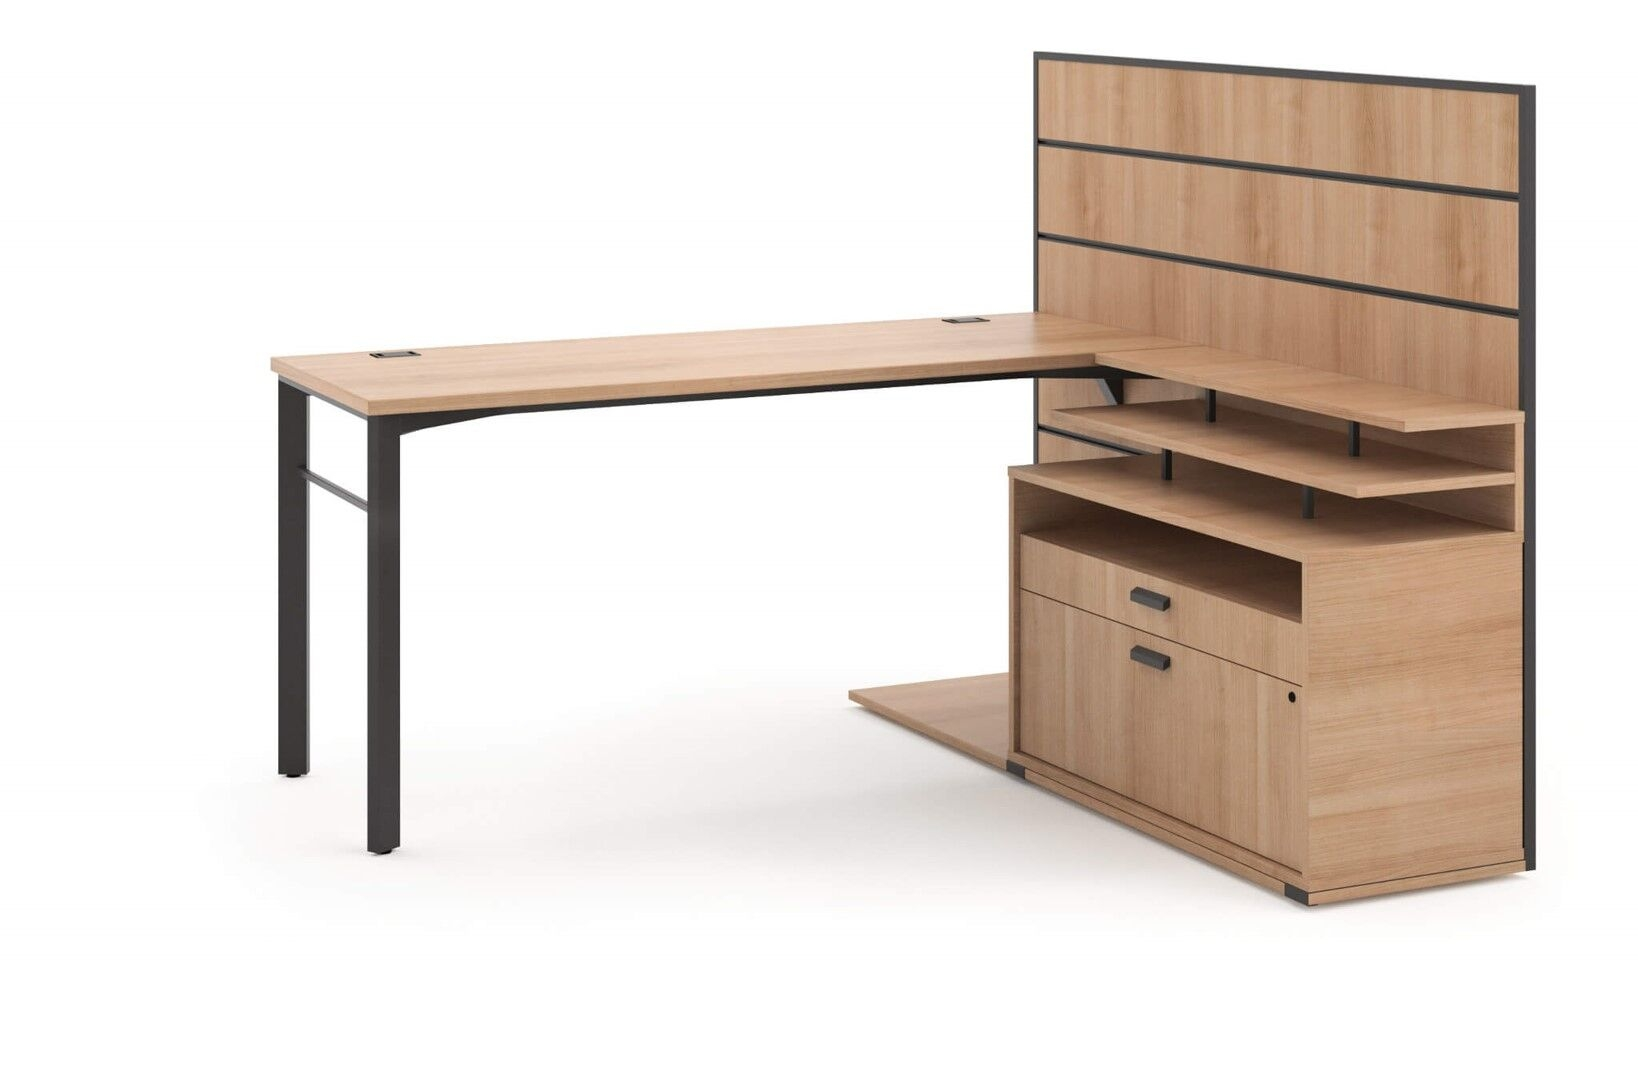 lshaped-desks-l-shaped-desk-with-shelves_preview.jpg